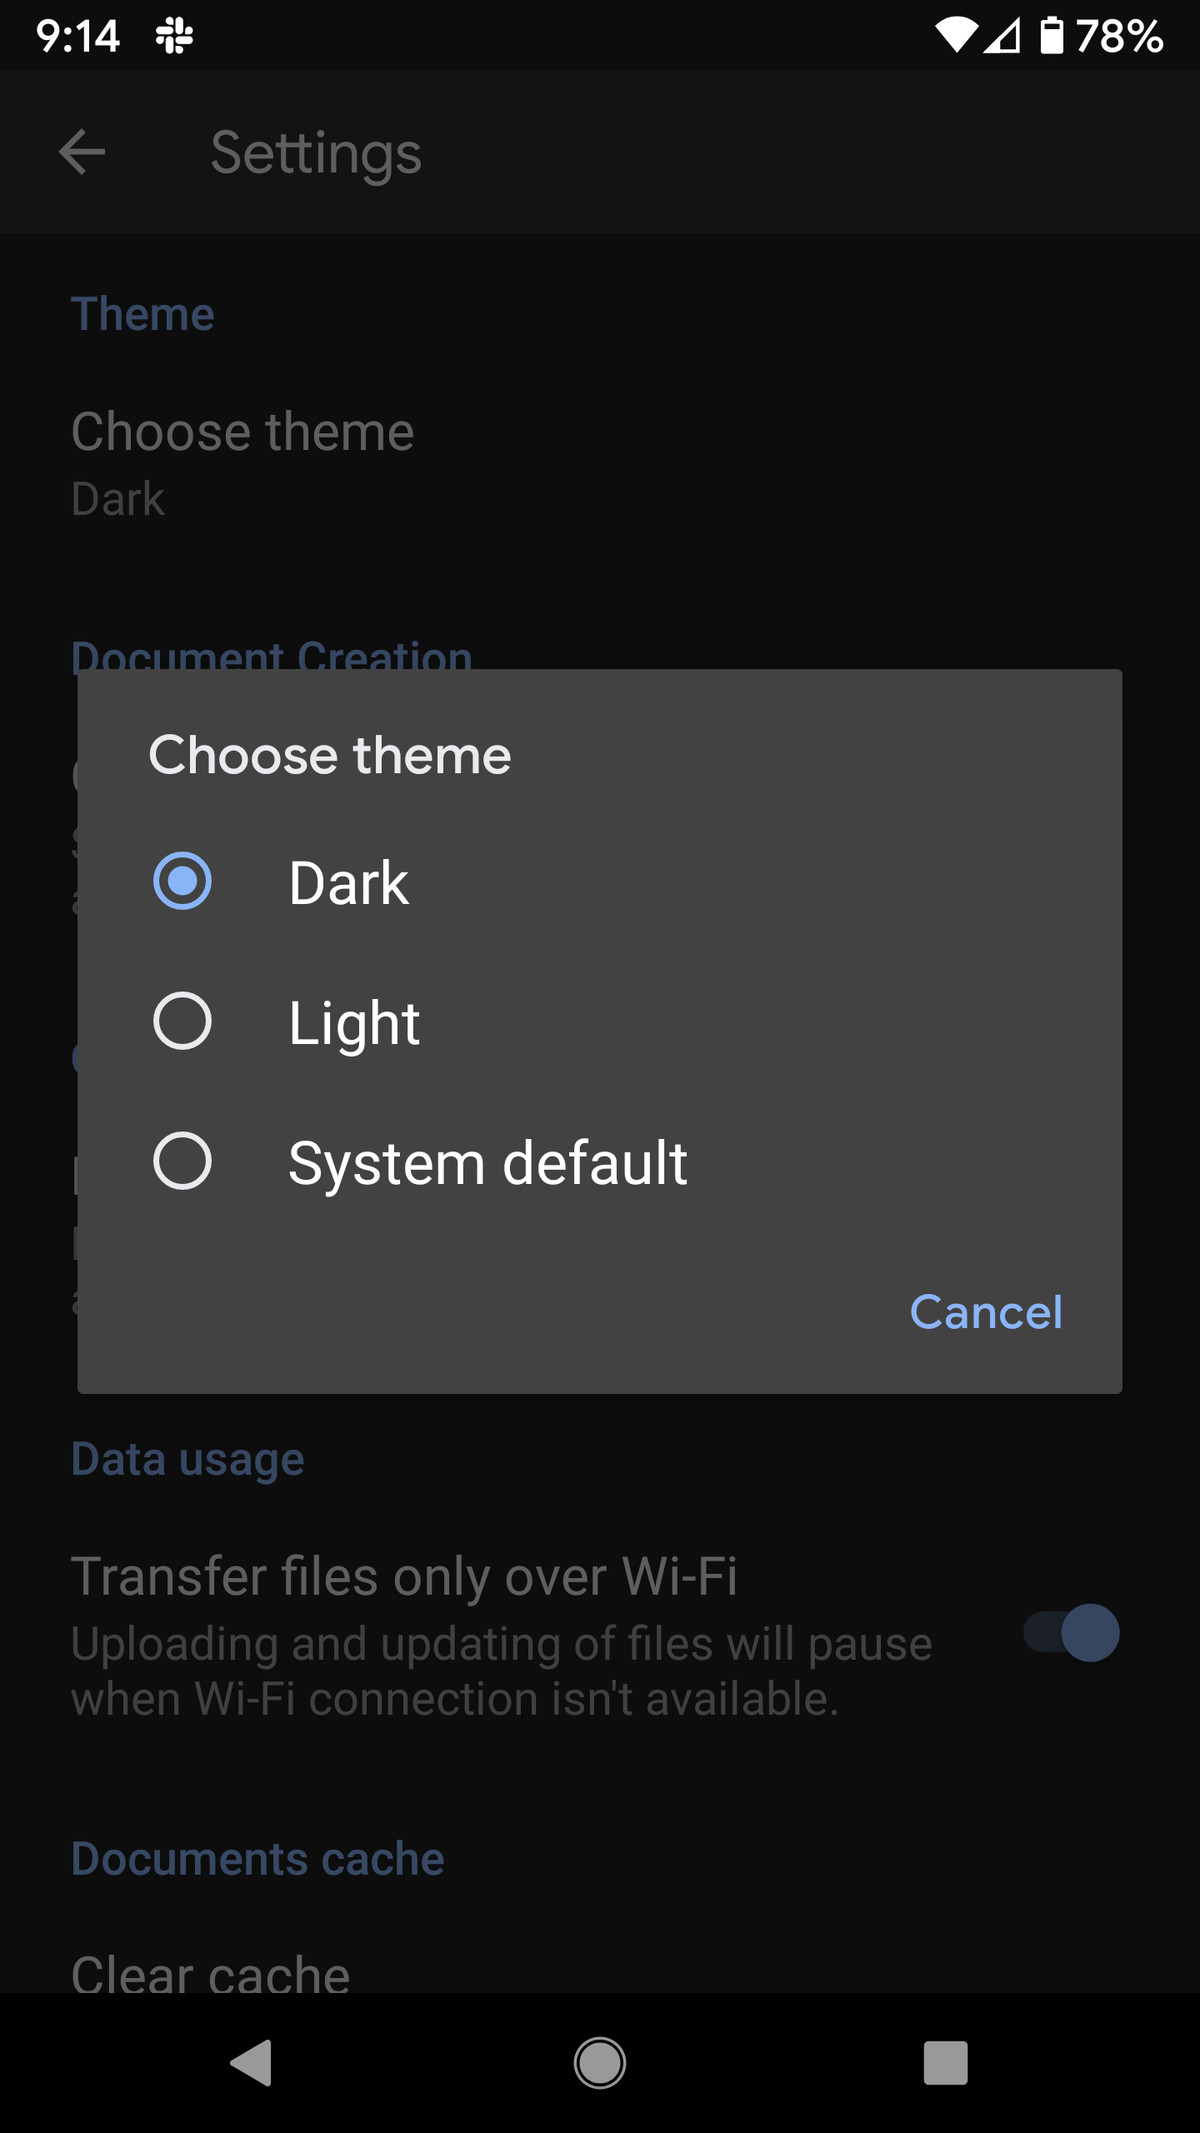 You can choose dark or light modes, or just go with the system default.